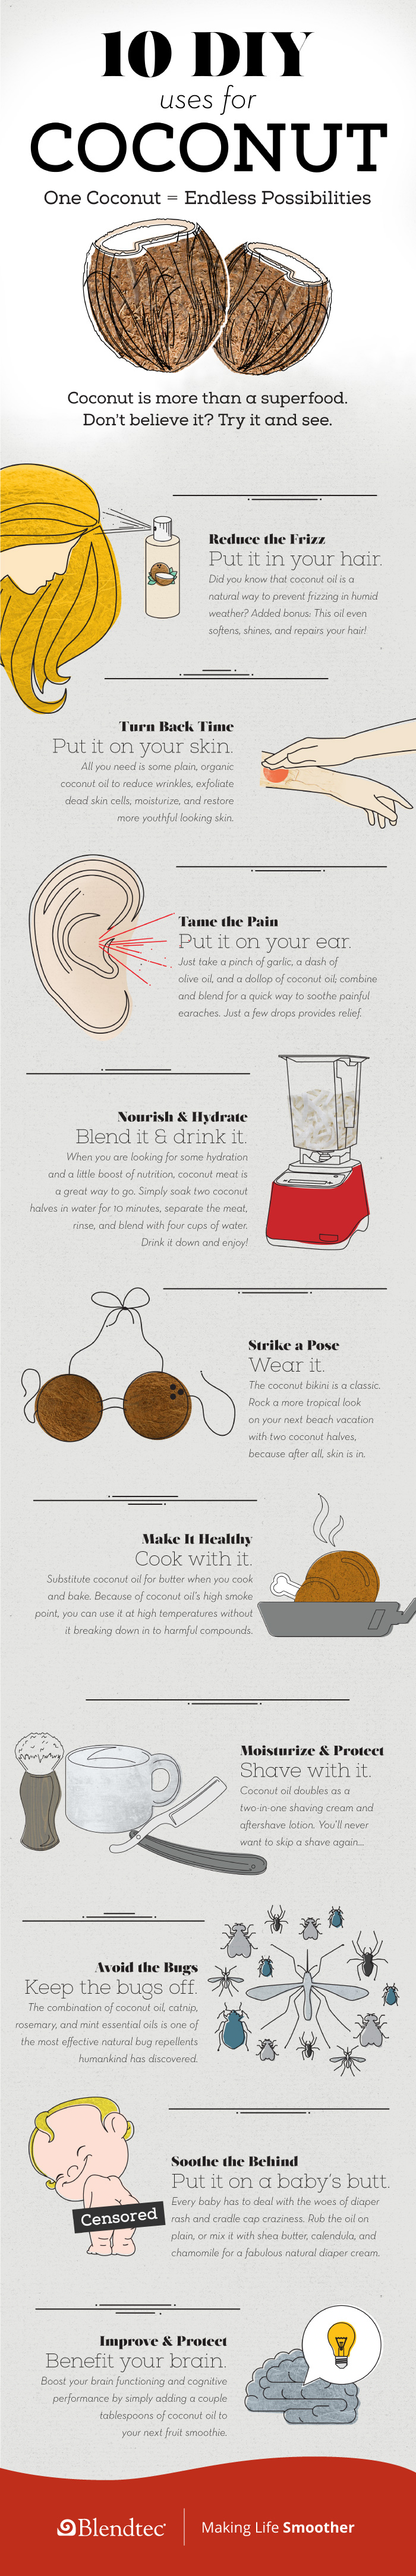 DIY: 10 Different Ways Coconuts Can Be Used - Infographic